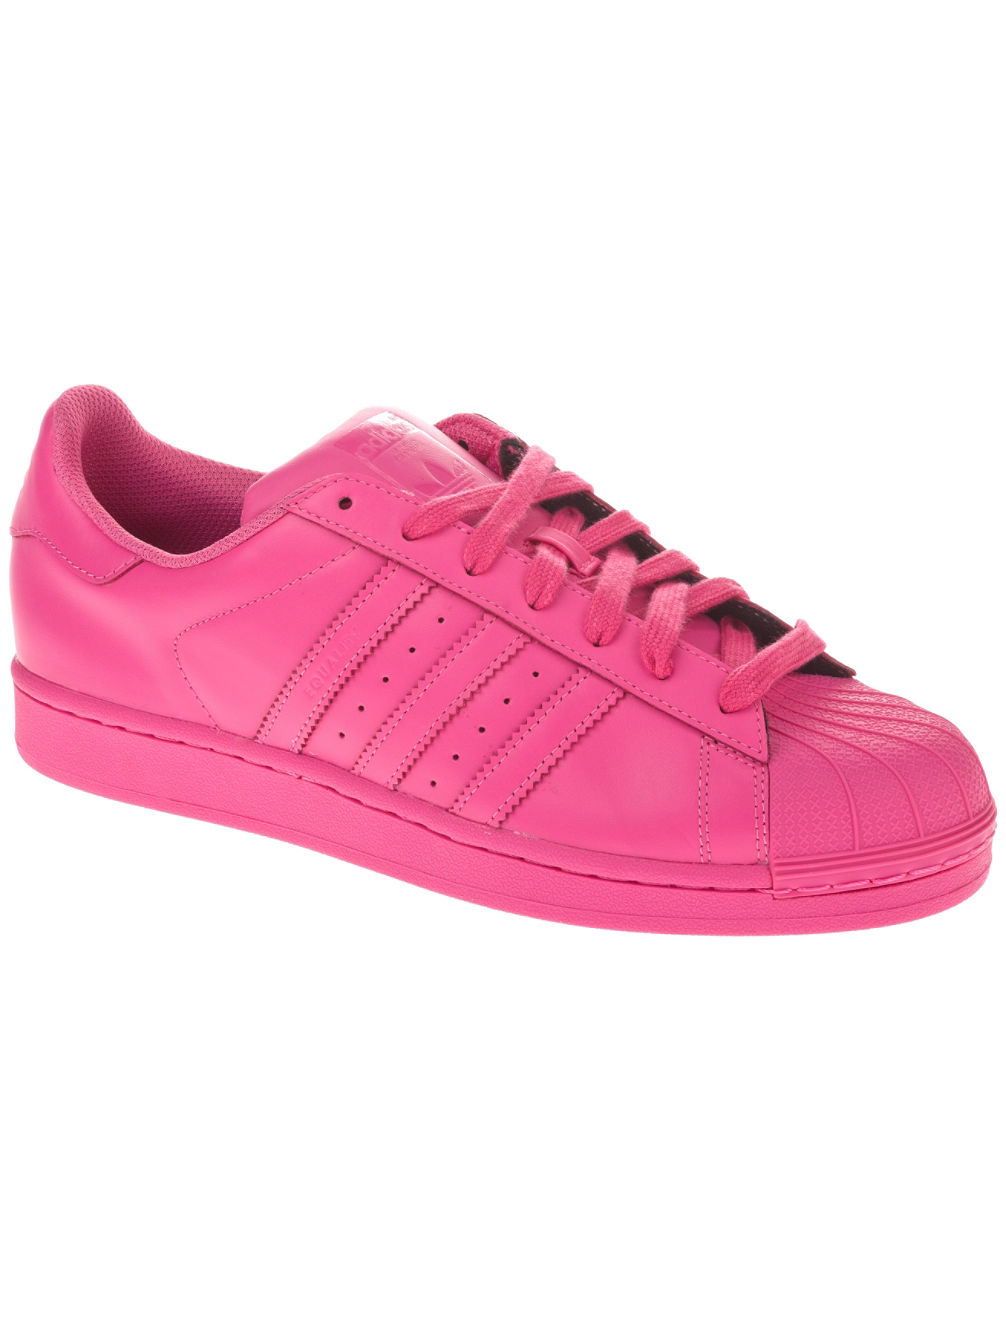 gctxu Buy adidas Originals Supercolor Superstar Sneakers online at blue